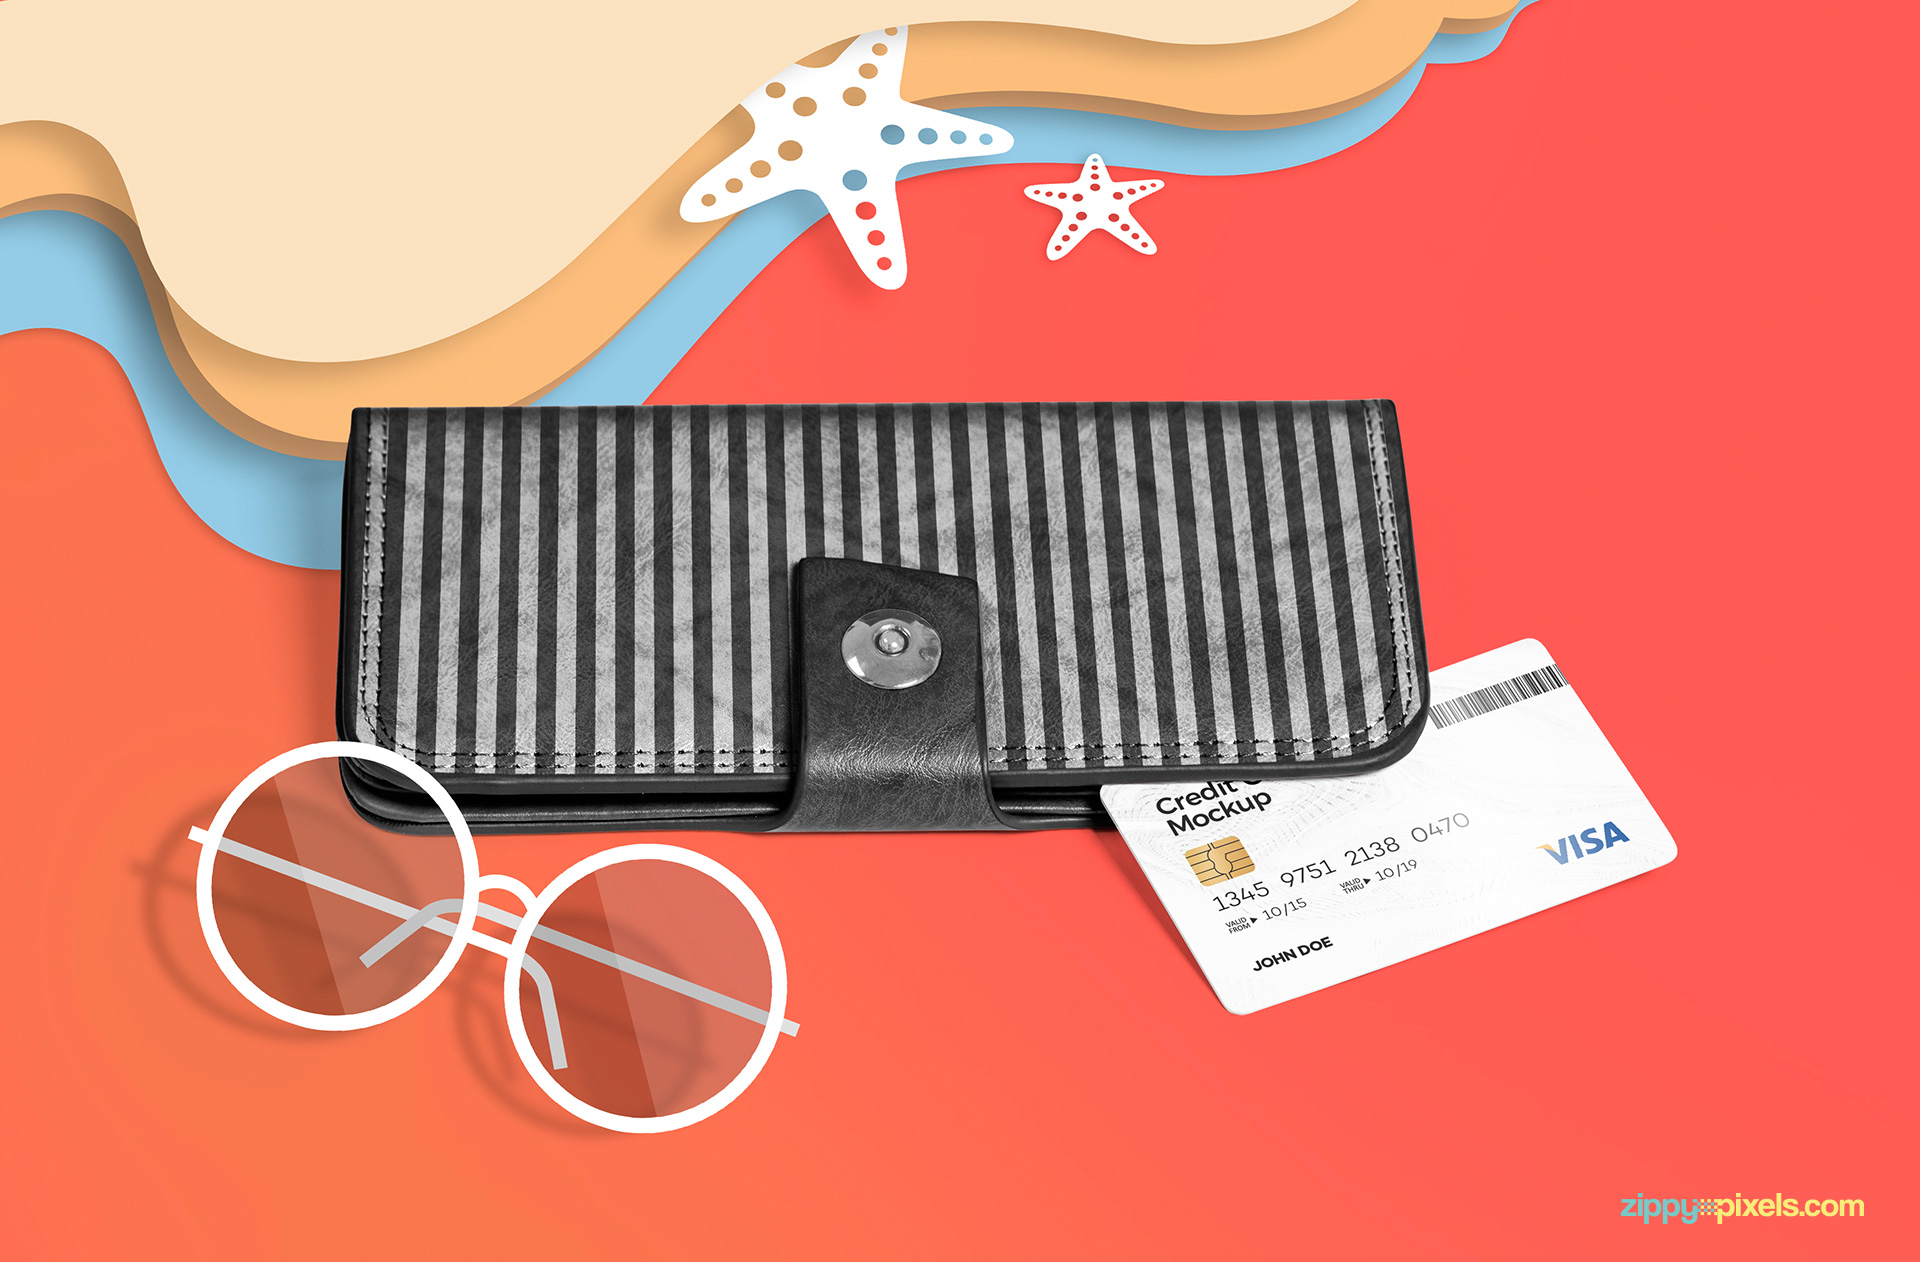 credit-card-mockup-with-glasses-wallet-bonus-4